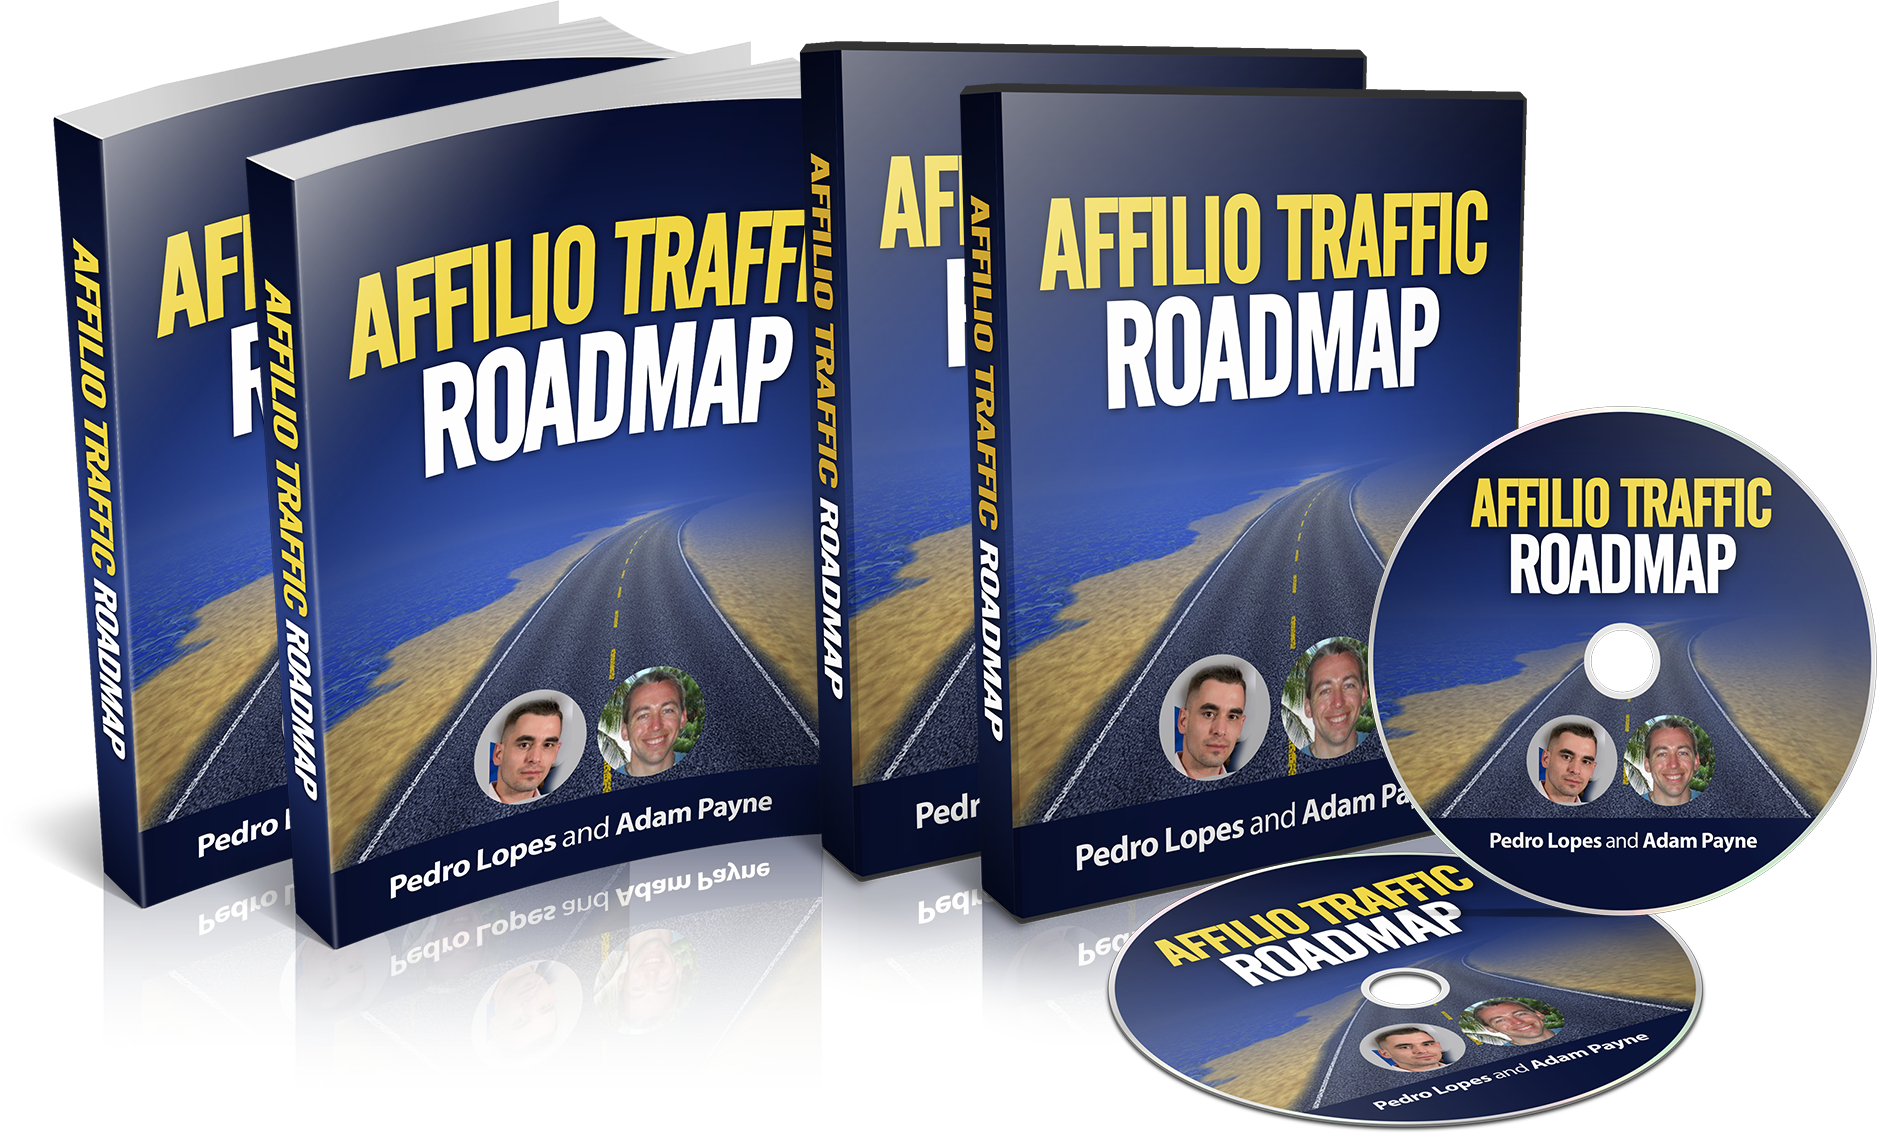 Affilio Traffic Roadmap